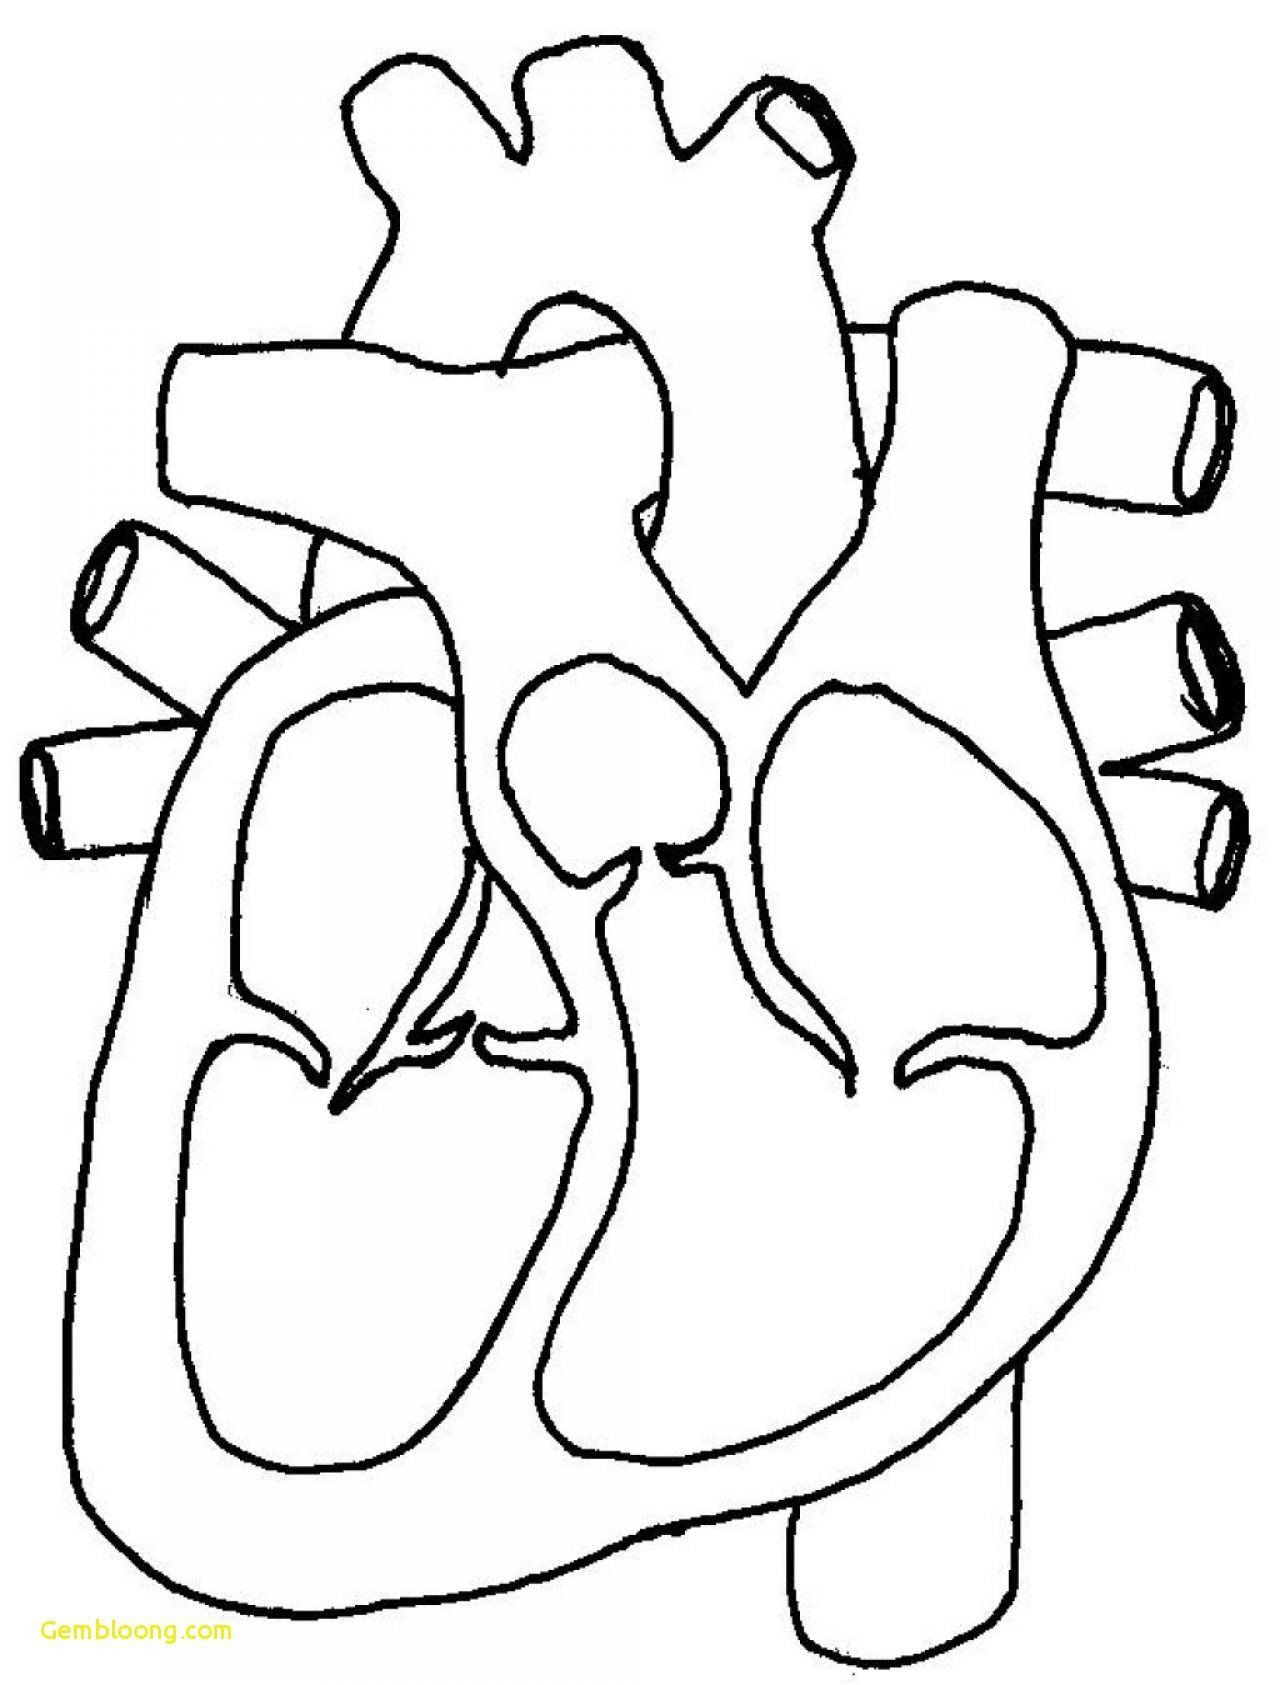 Human Heart Coloring Pages Blank Human Body Diagram In